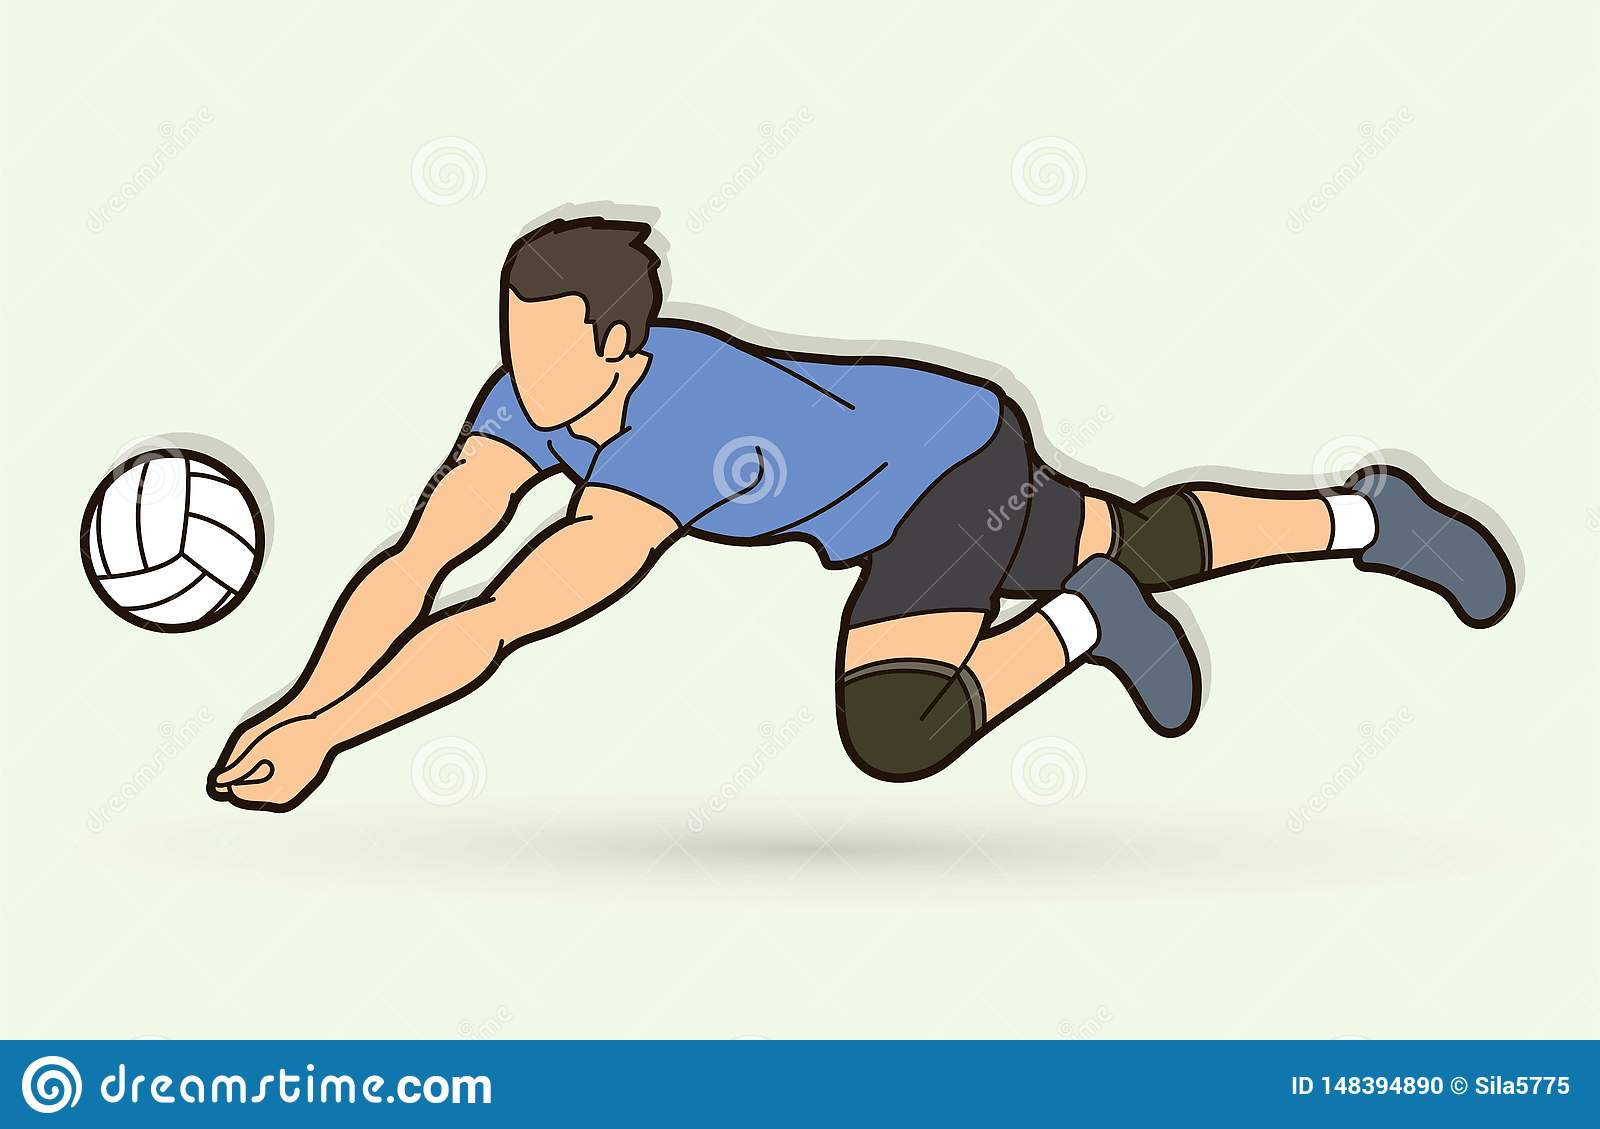 Man Volleyball Player Action Cartoon Graphic Stock Vector Illustration Of Male Sport 148394890